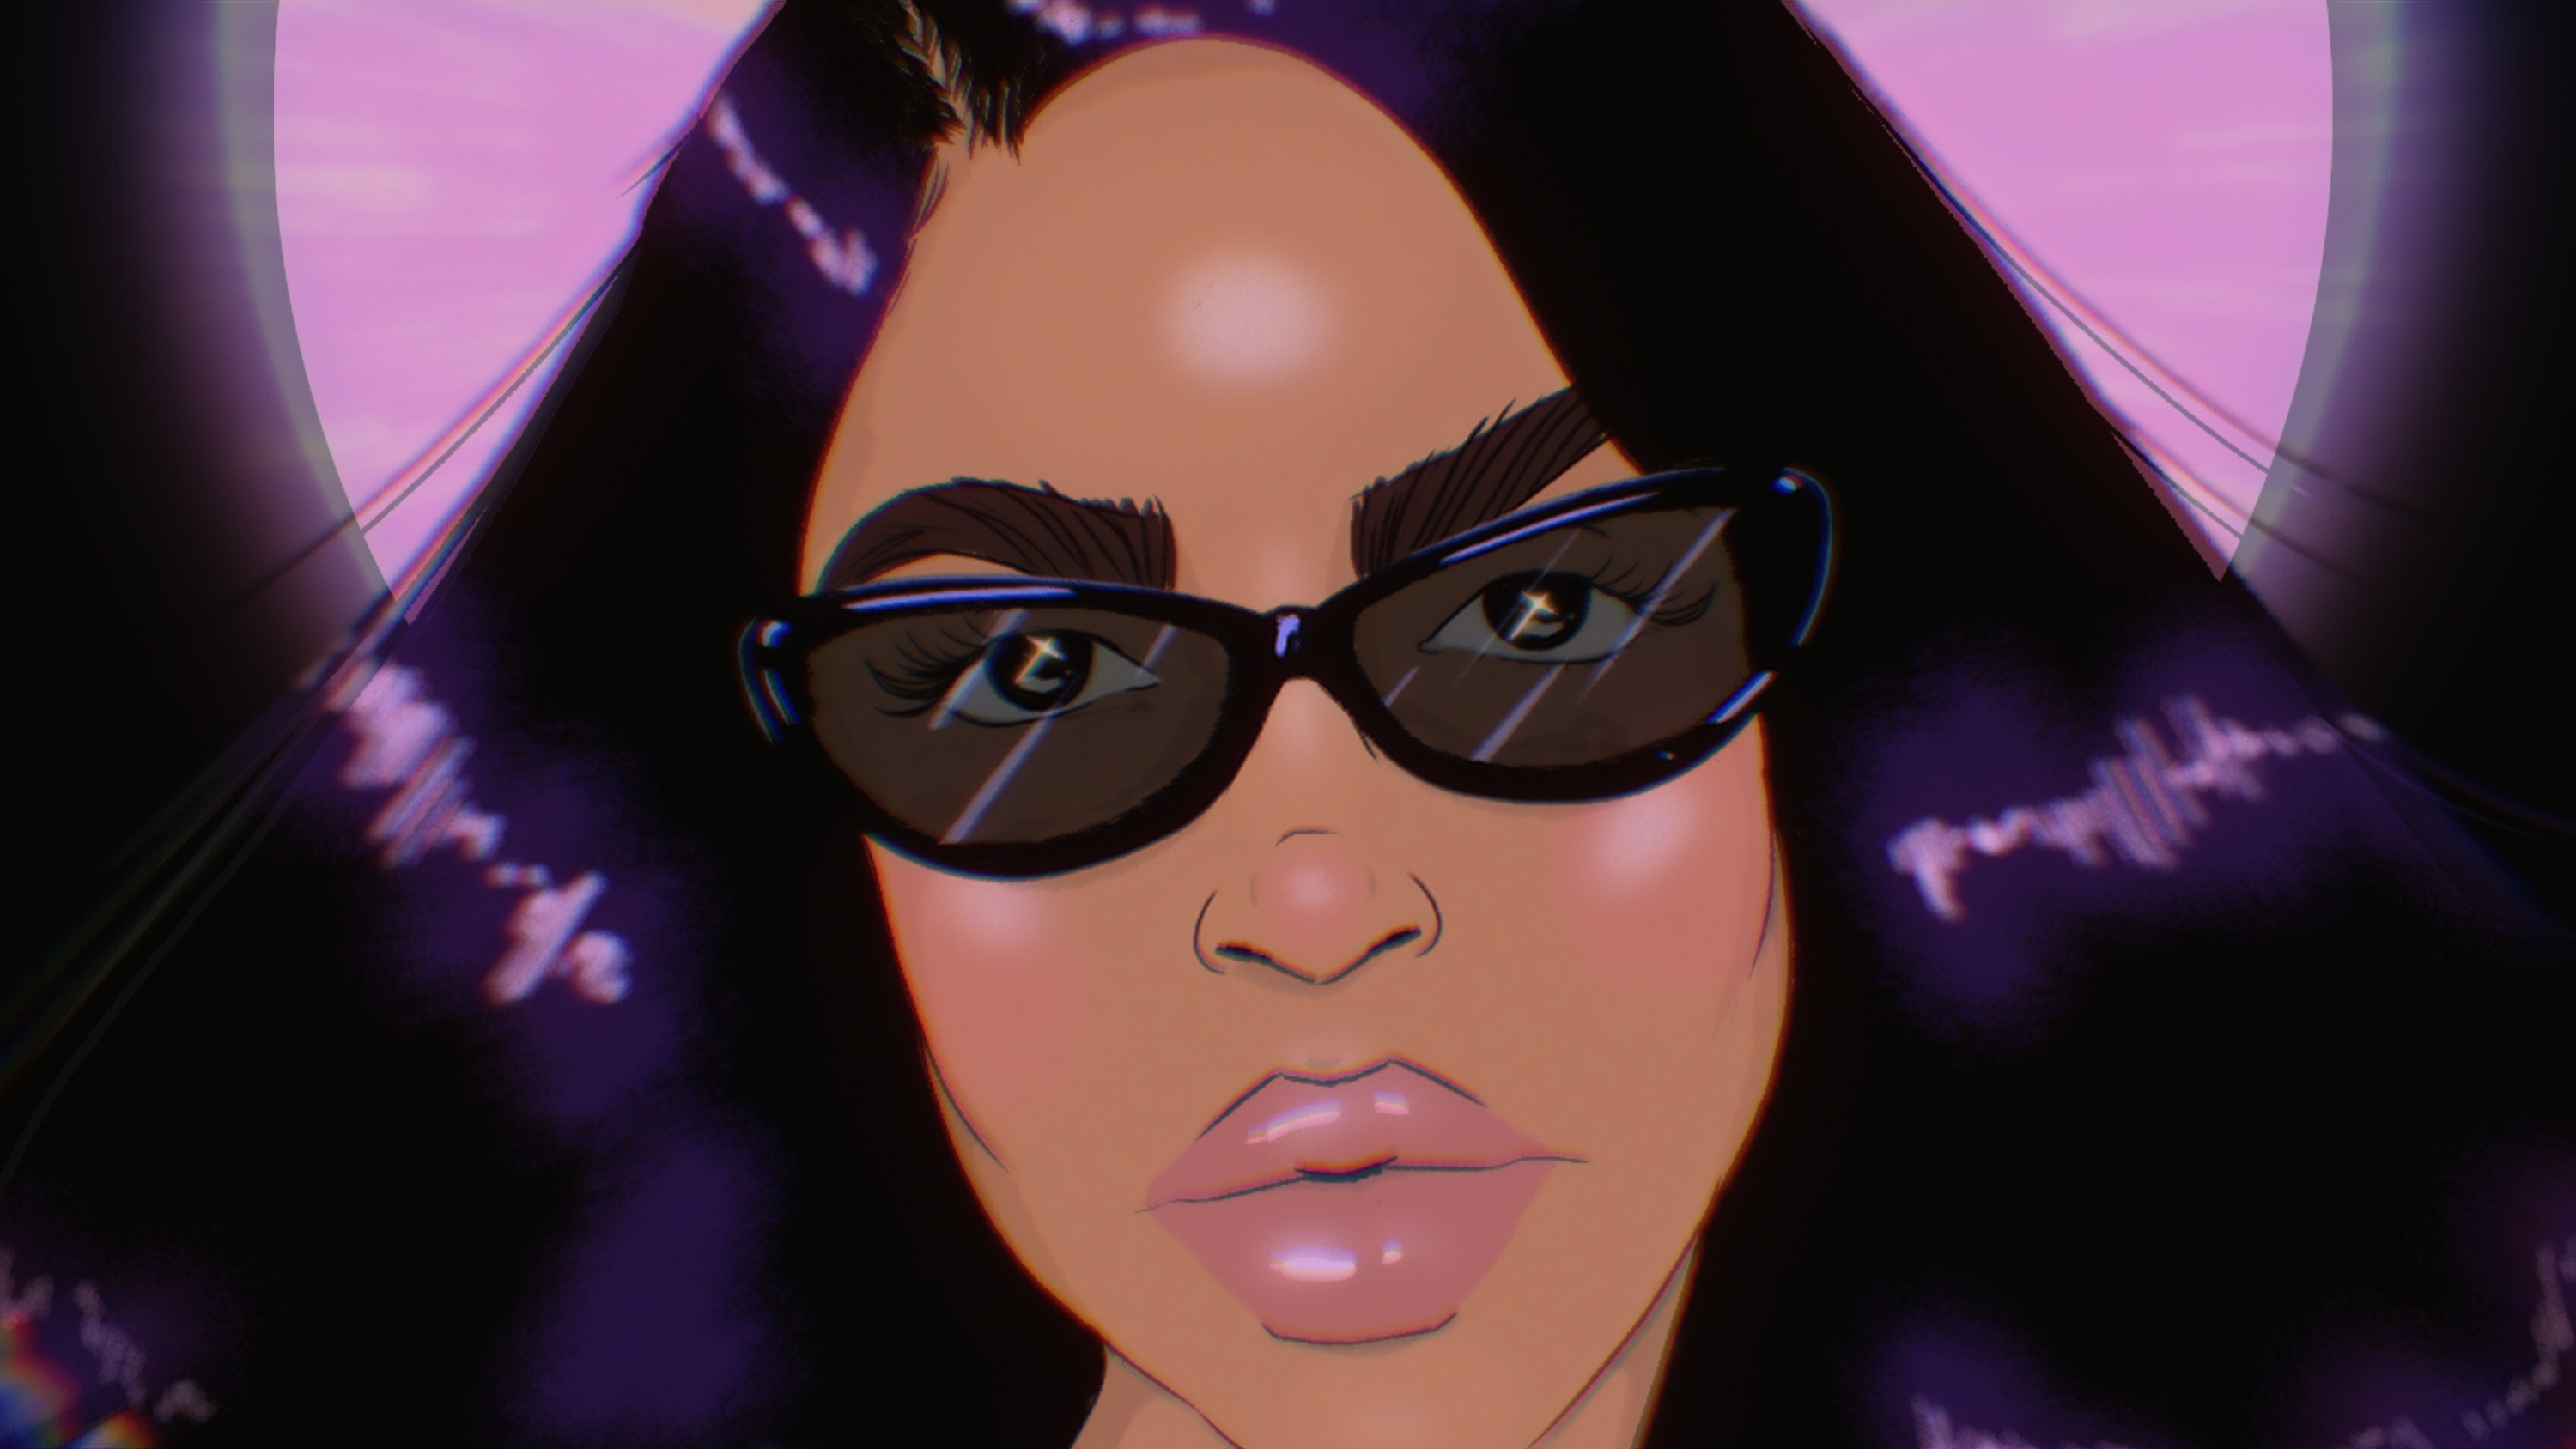 An illustration of the face of singer Aaliyah wearing sunglasses.